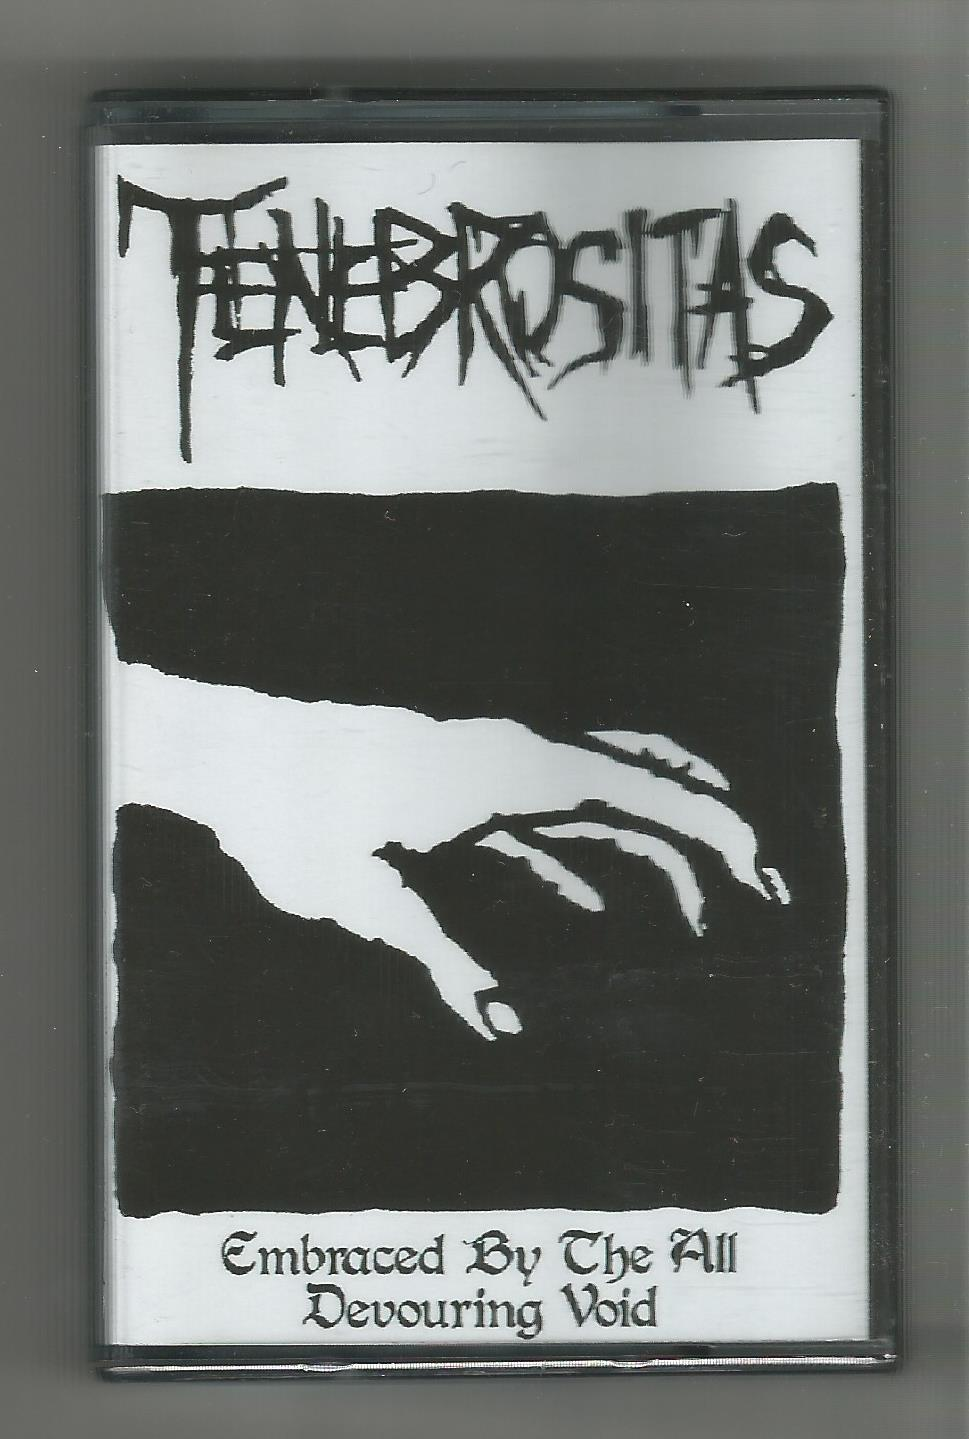 Tenebrositas - Embraced By The All Devouring Void